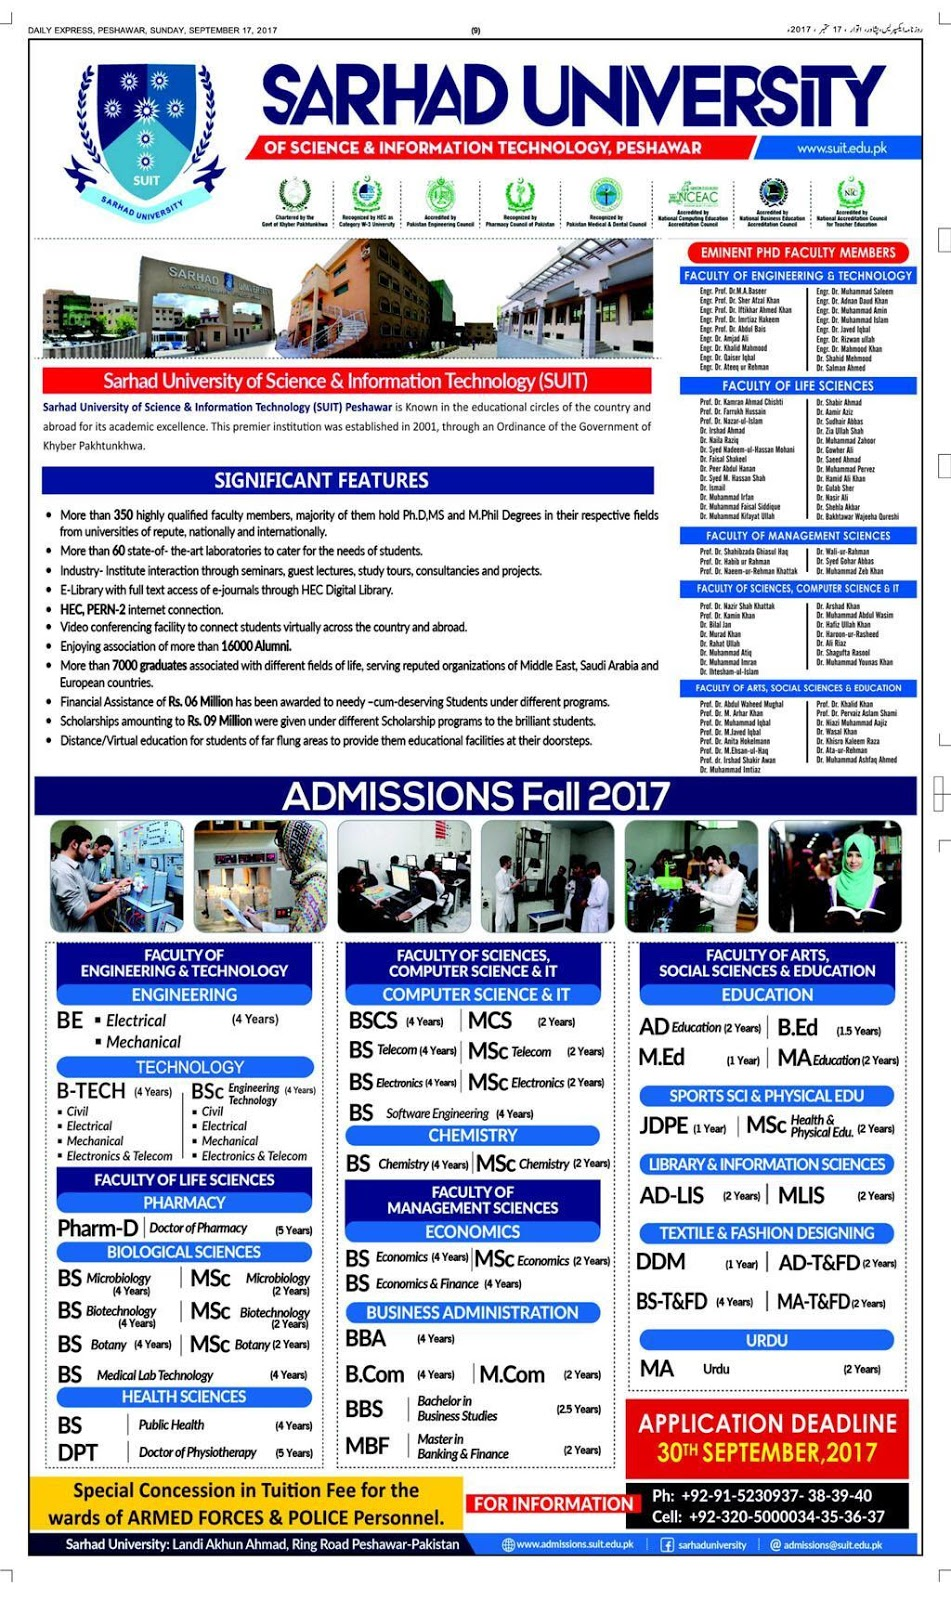 Admissions Open in Sarhad University of Science and Information Technology - 2017